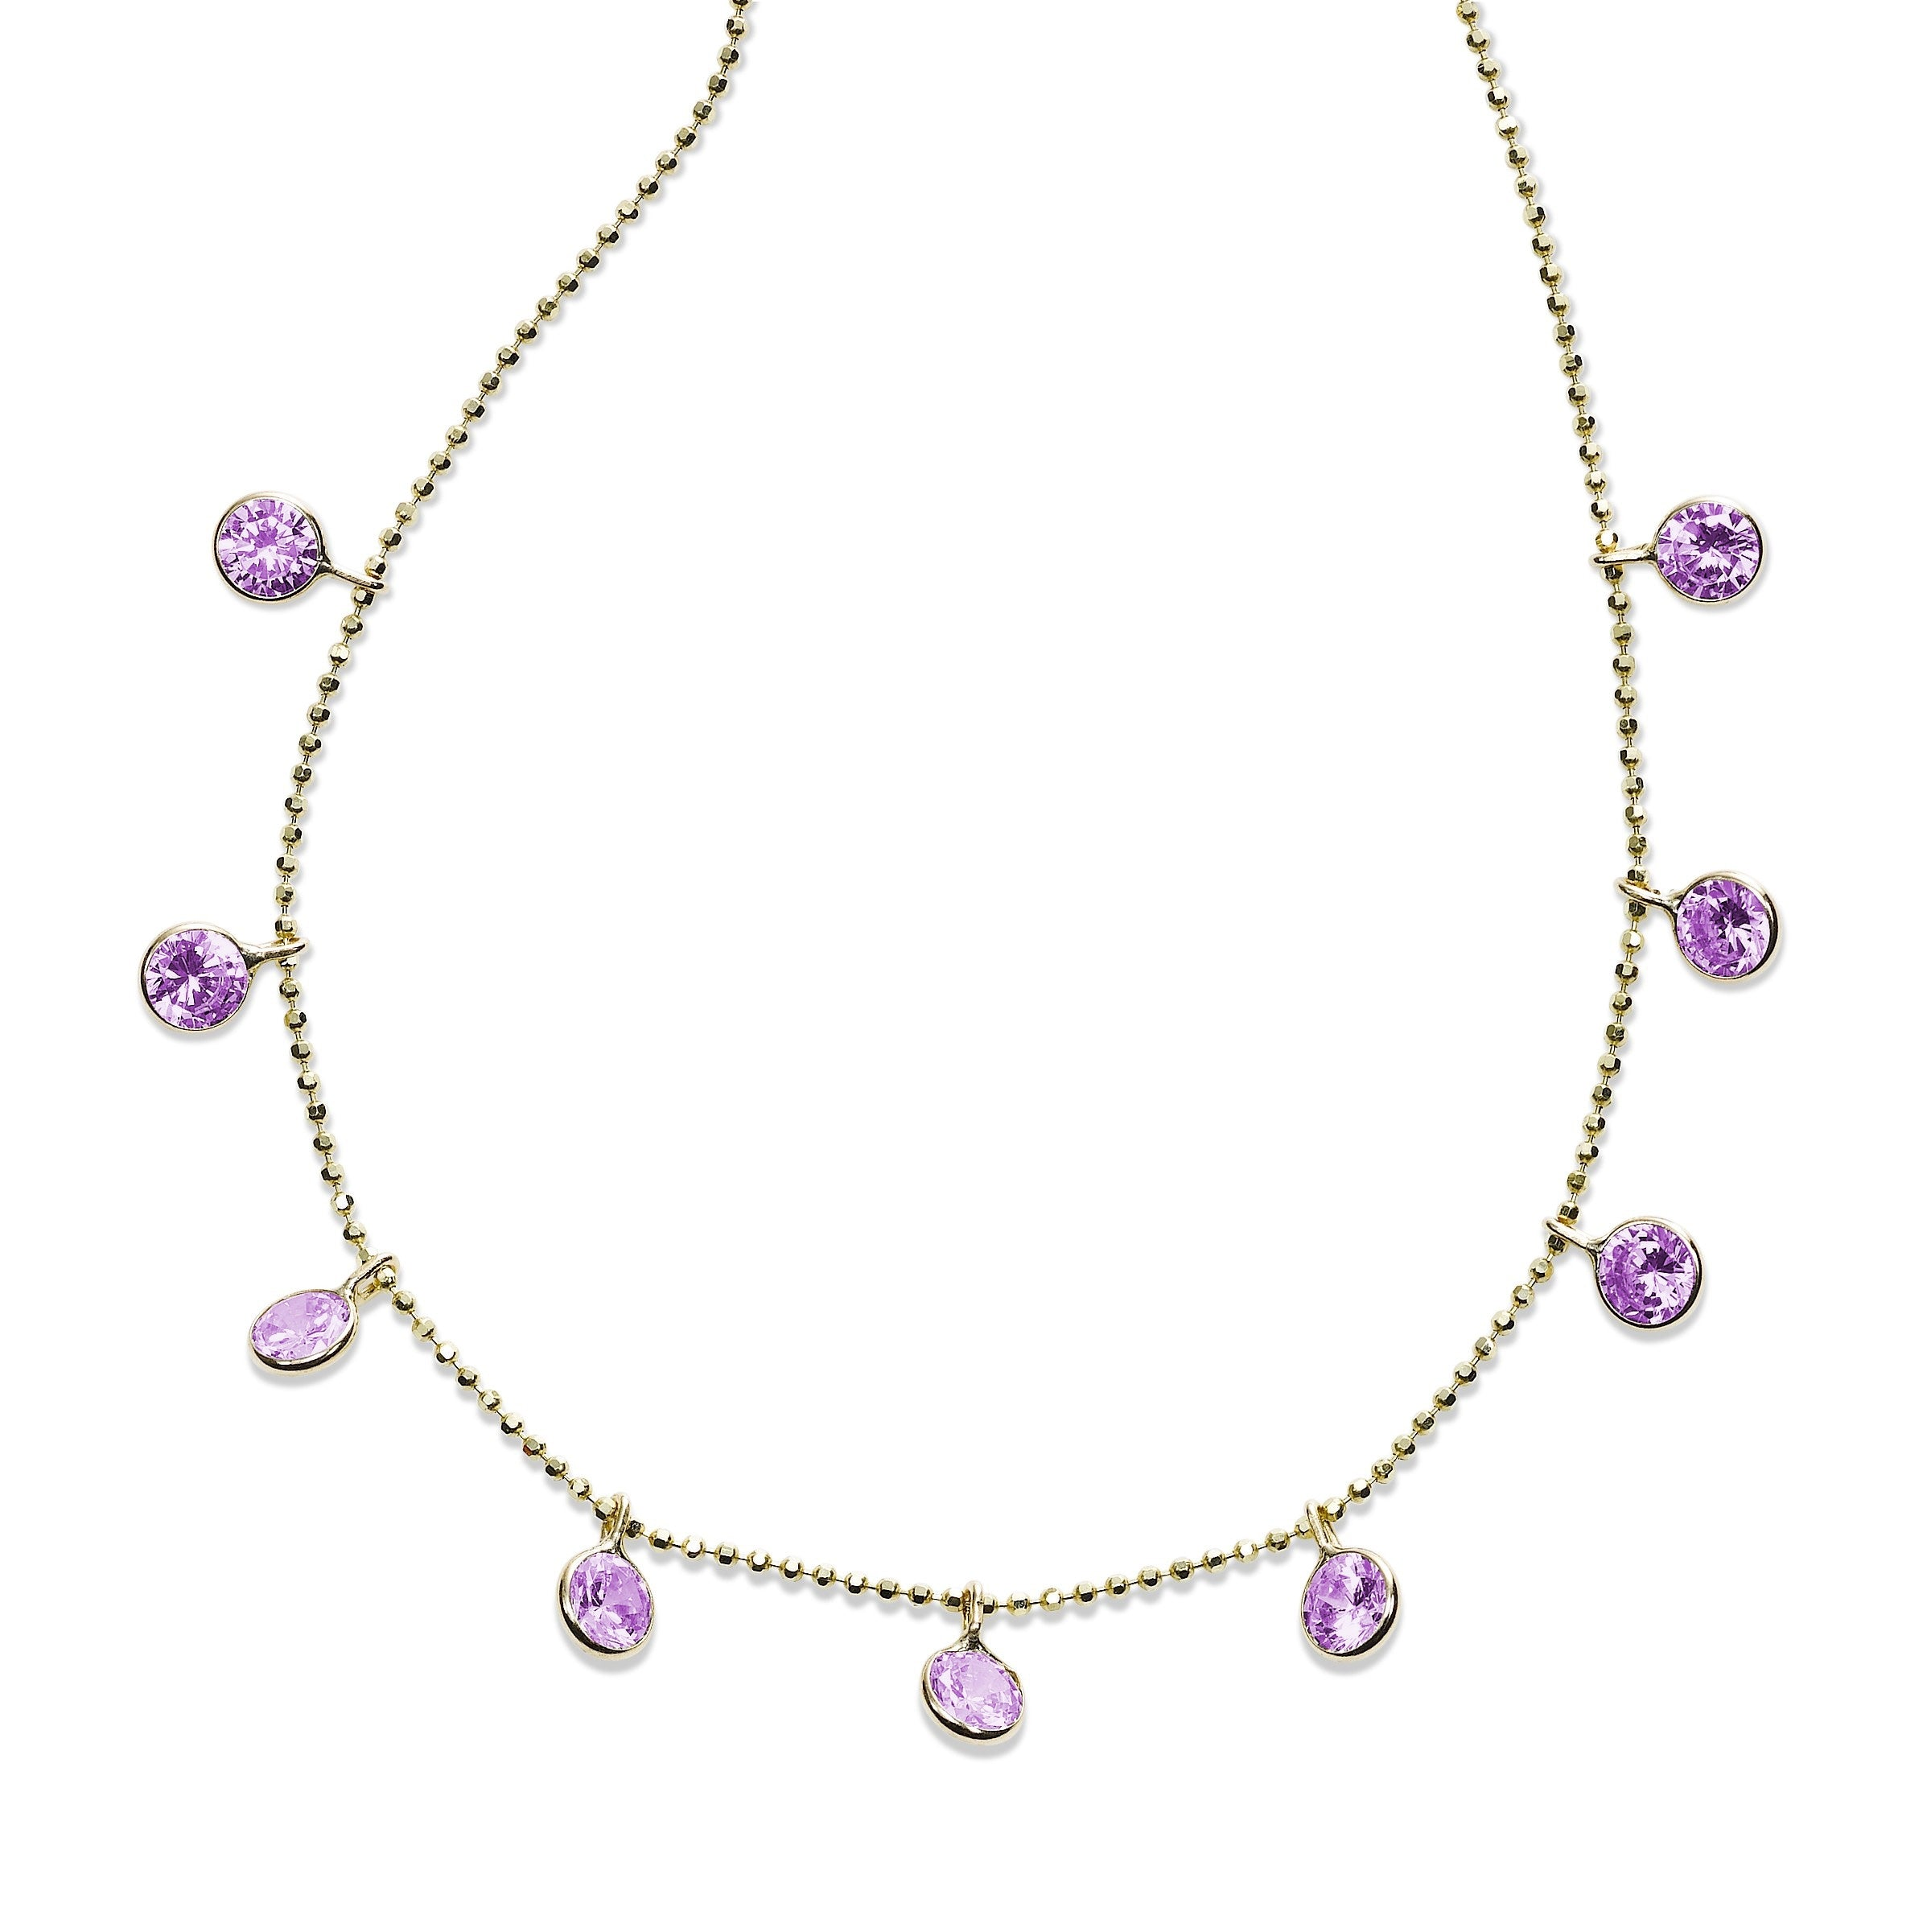 Bezel Set Amethyst Drop Necklace, 18 Inches, 14K Yellow Gold